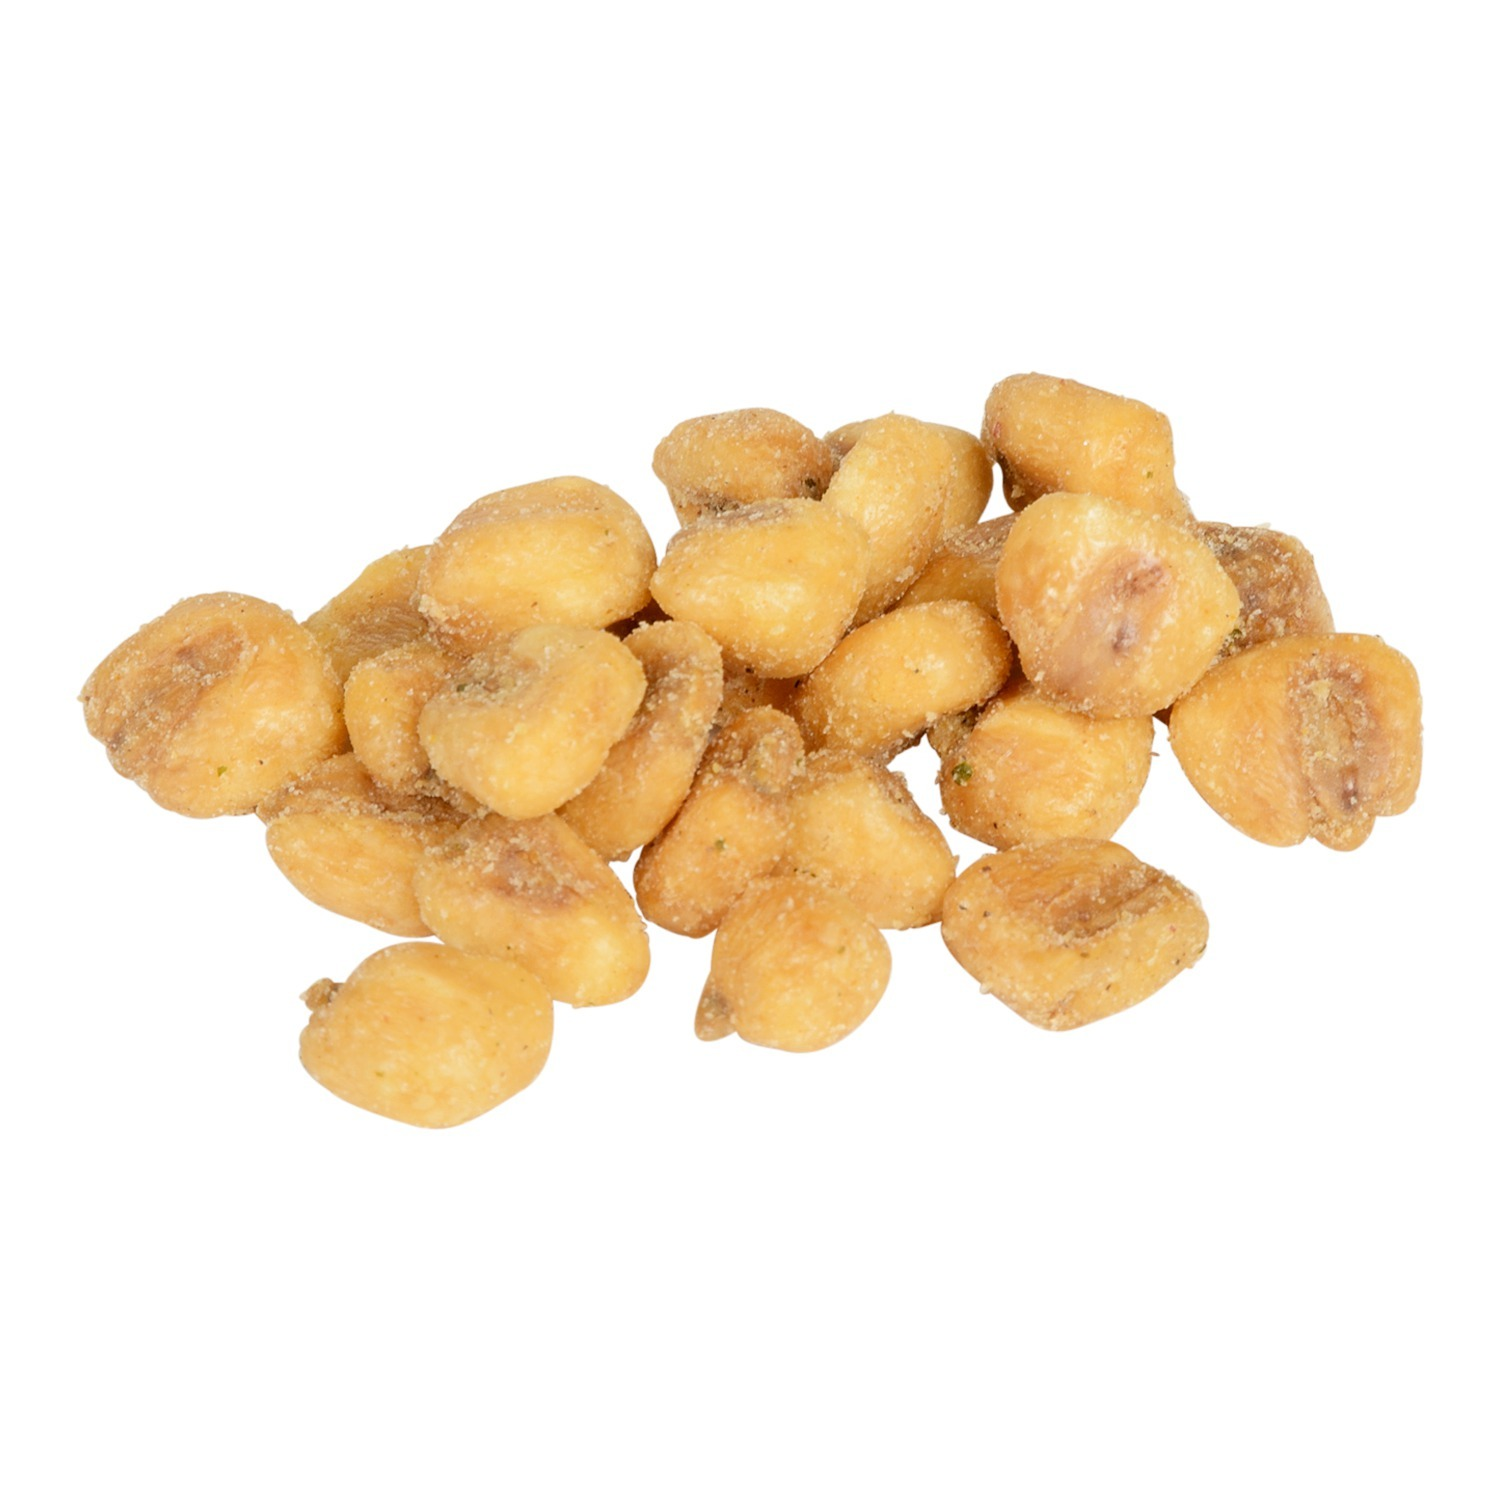 CORN NUTS Snacks Ranch 25lb